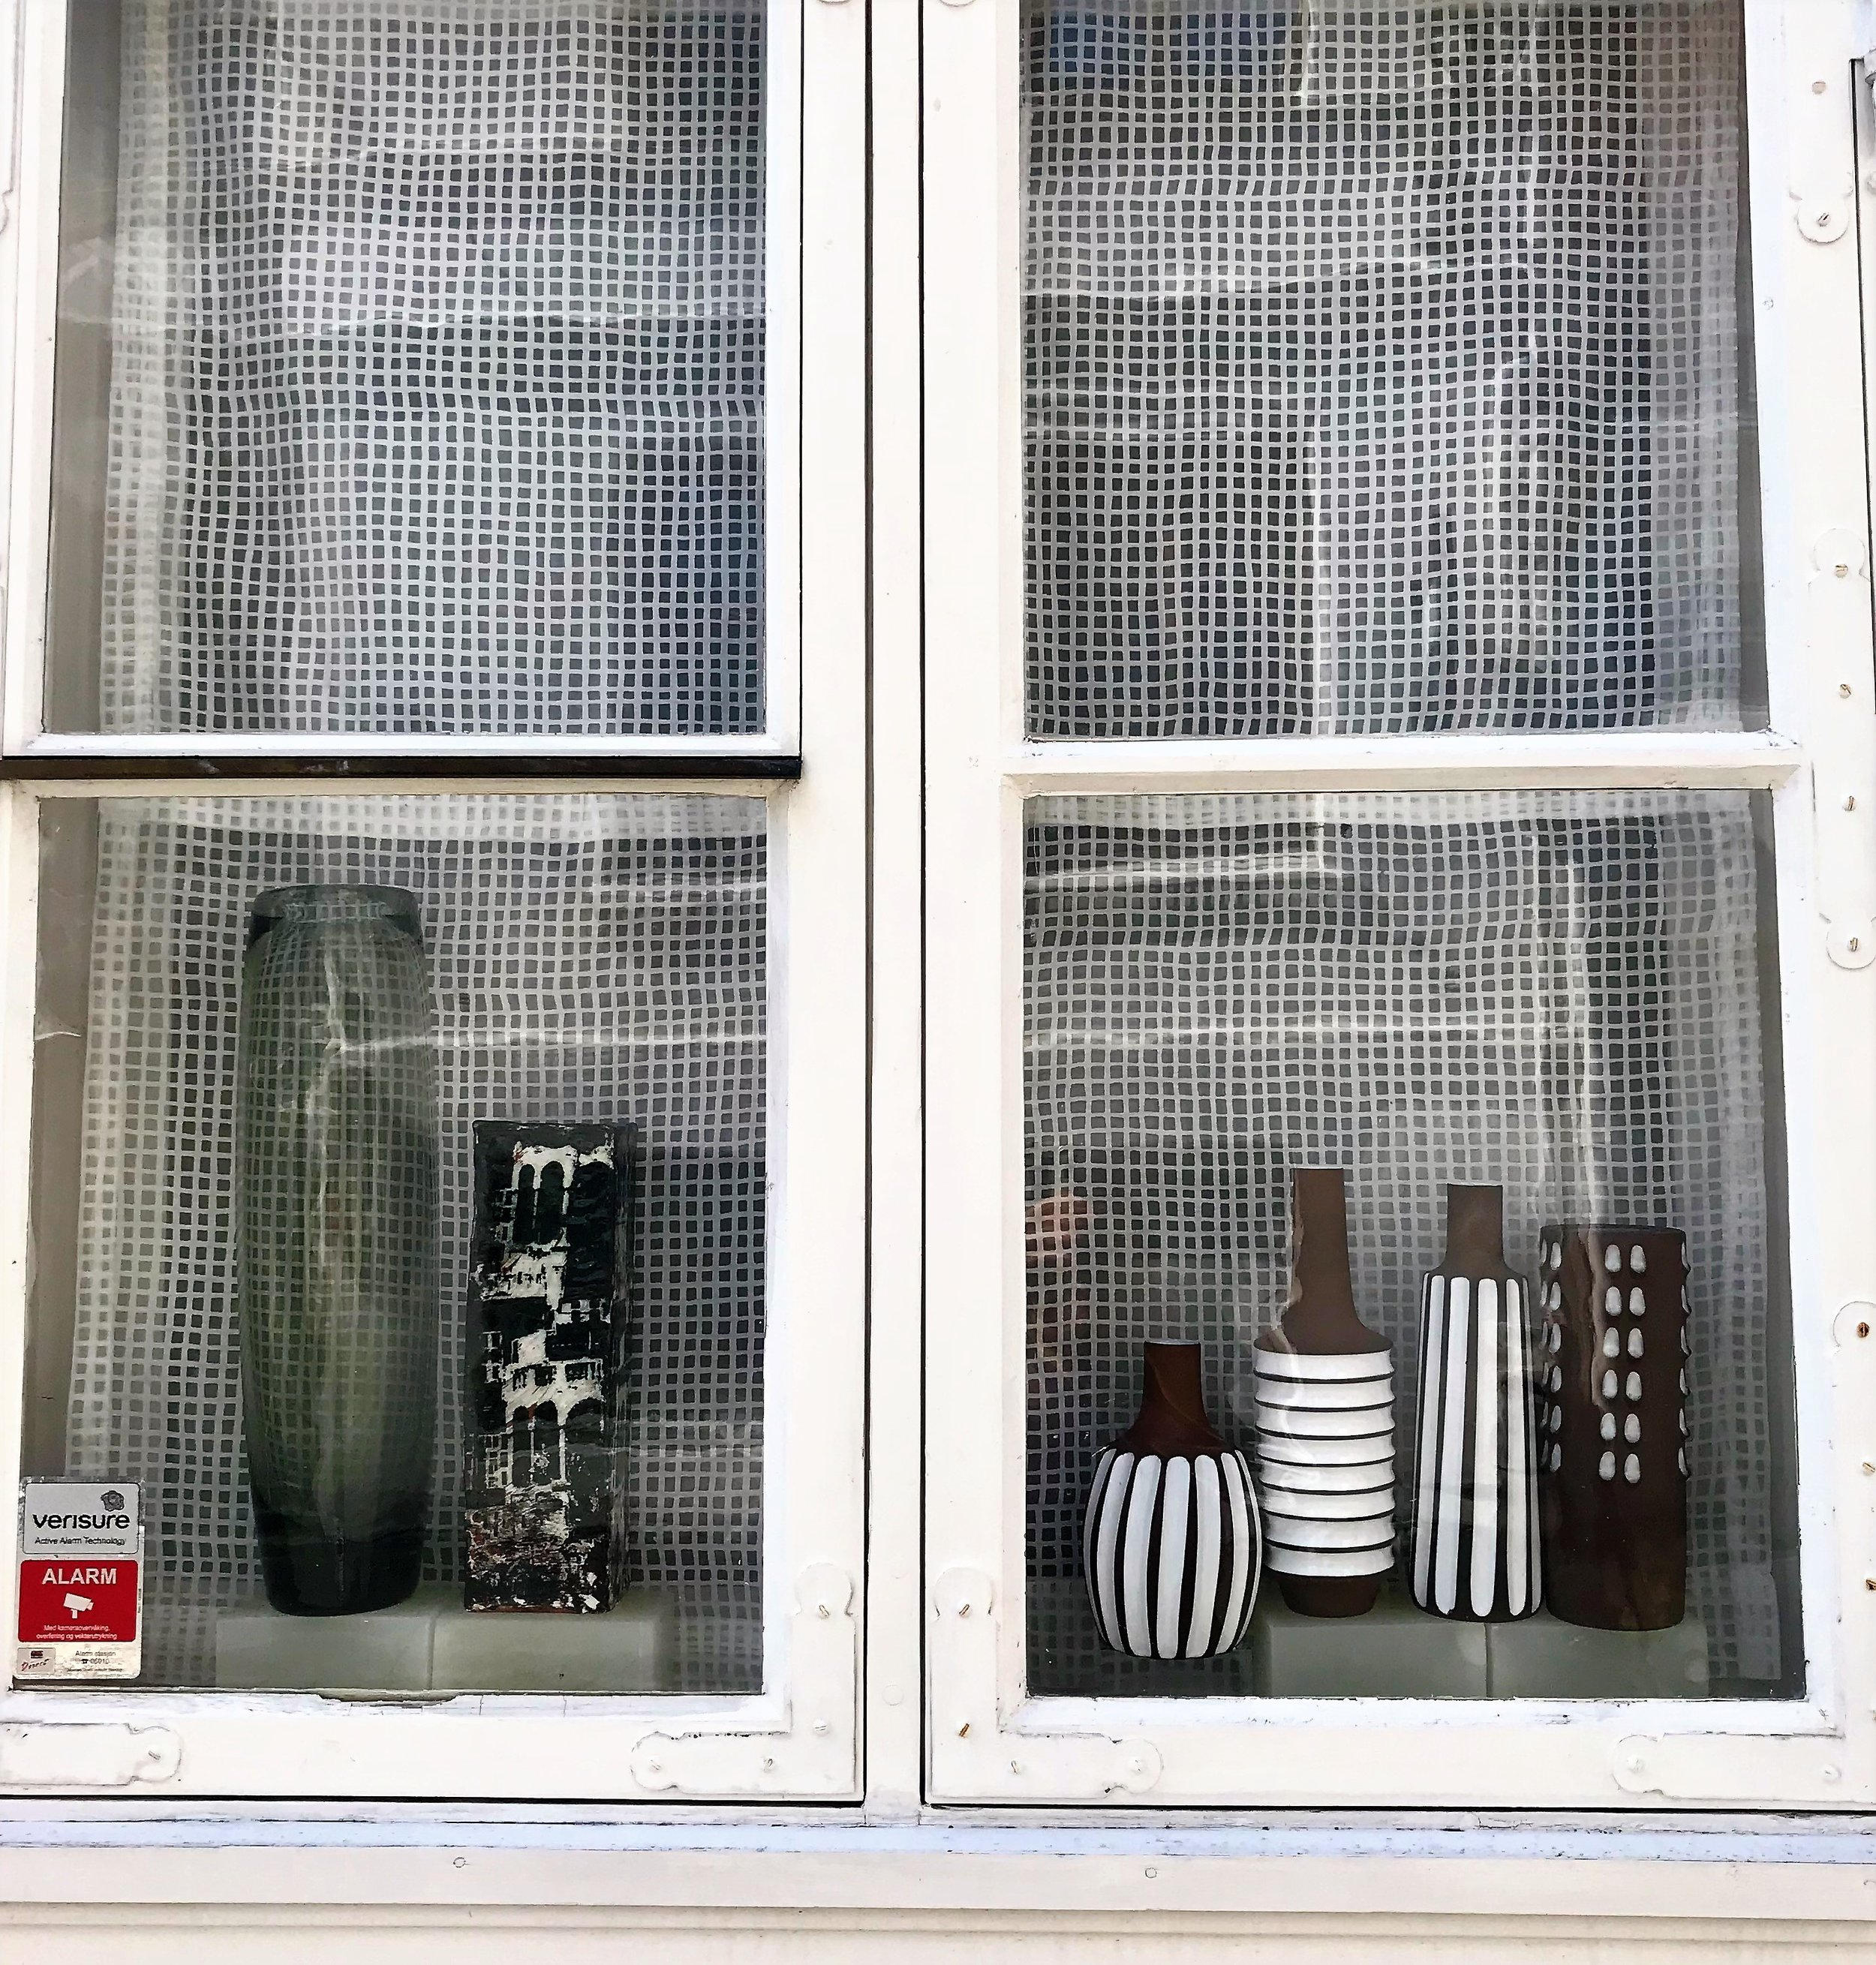 Someones ceramic collection in their front window In Bergen.